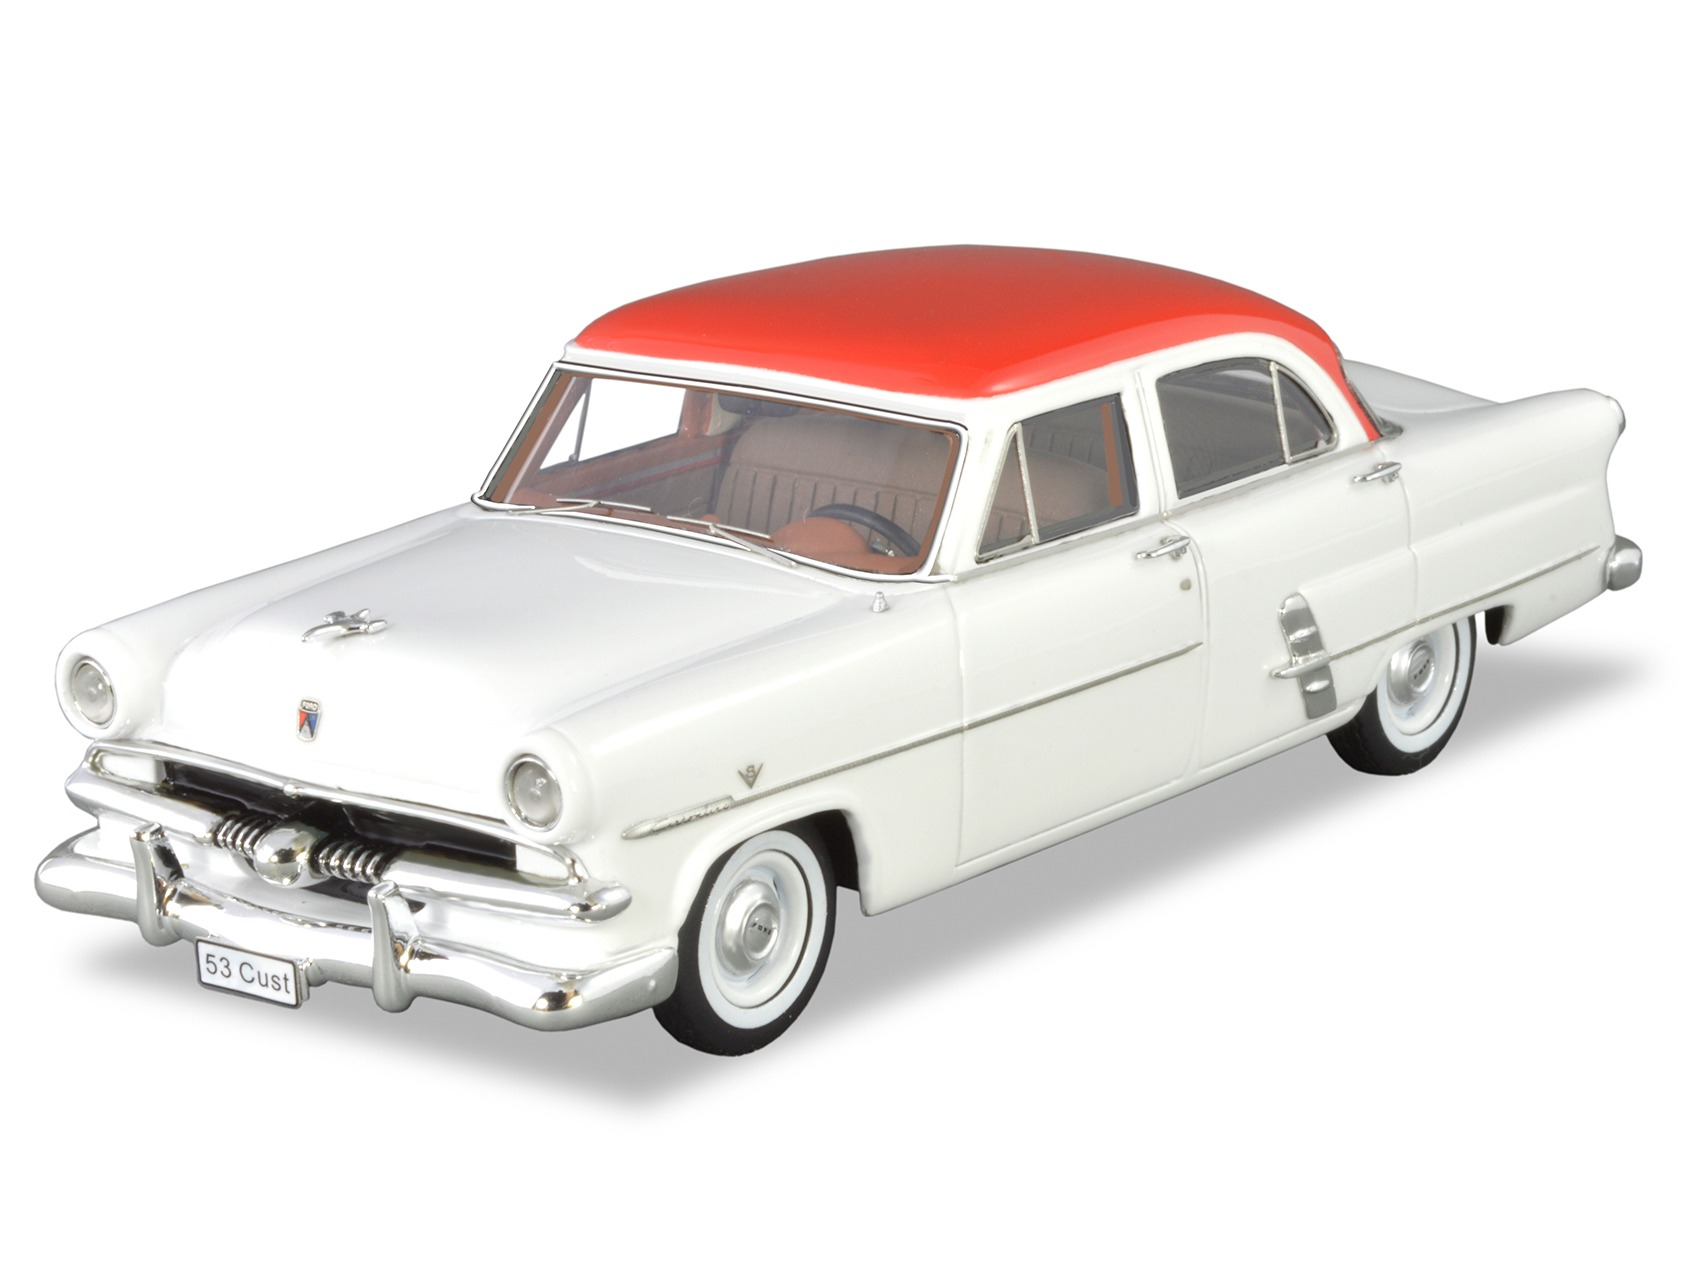 1953 Customline Sedan – White / Red (LHD)